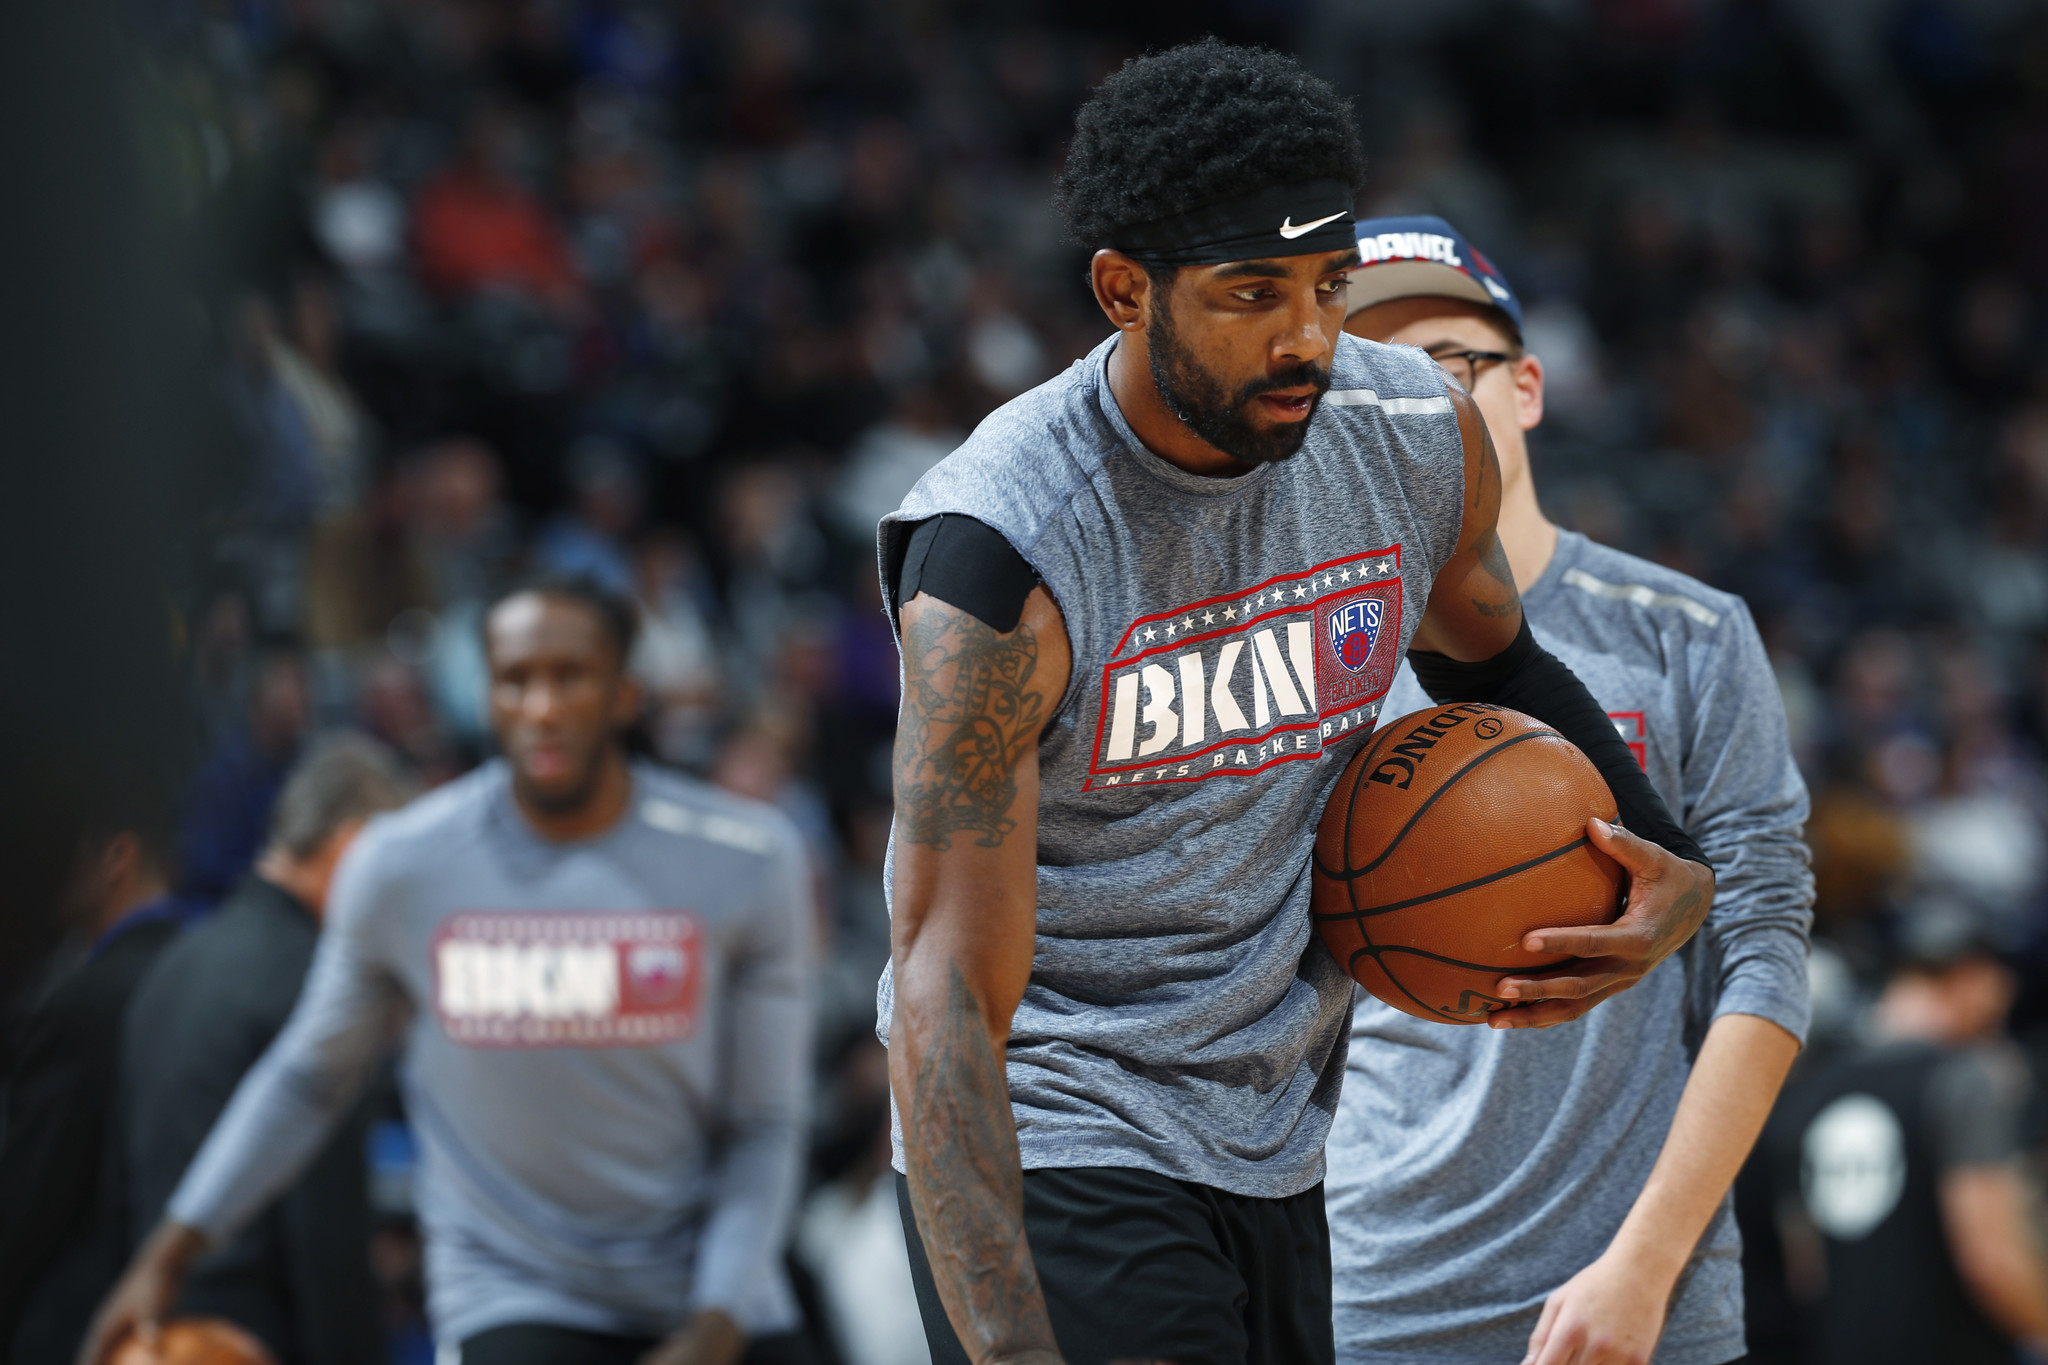 Kyrie Irving will not travel with the Nets for their next two games